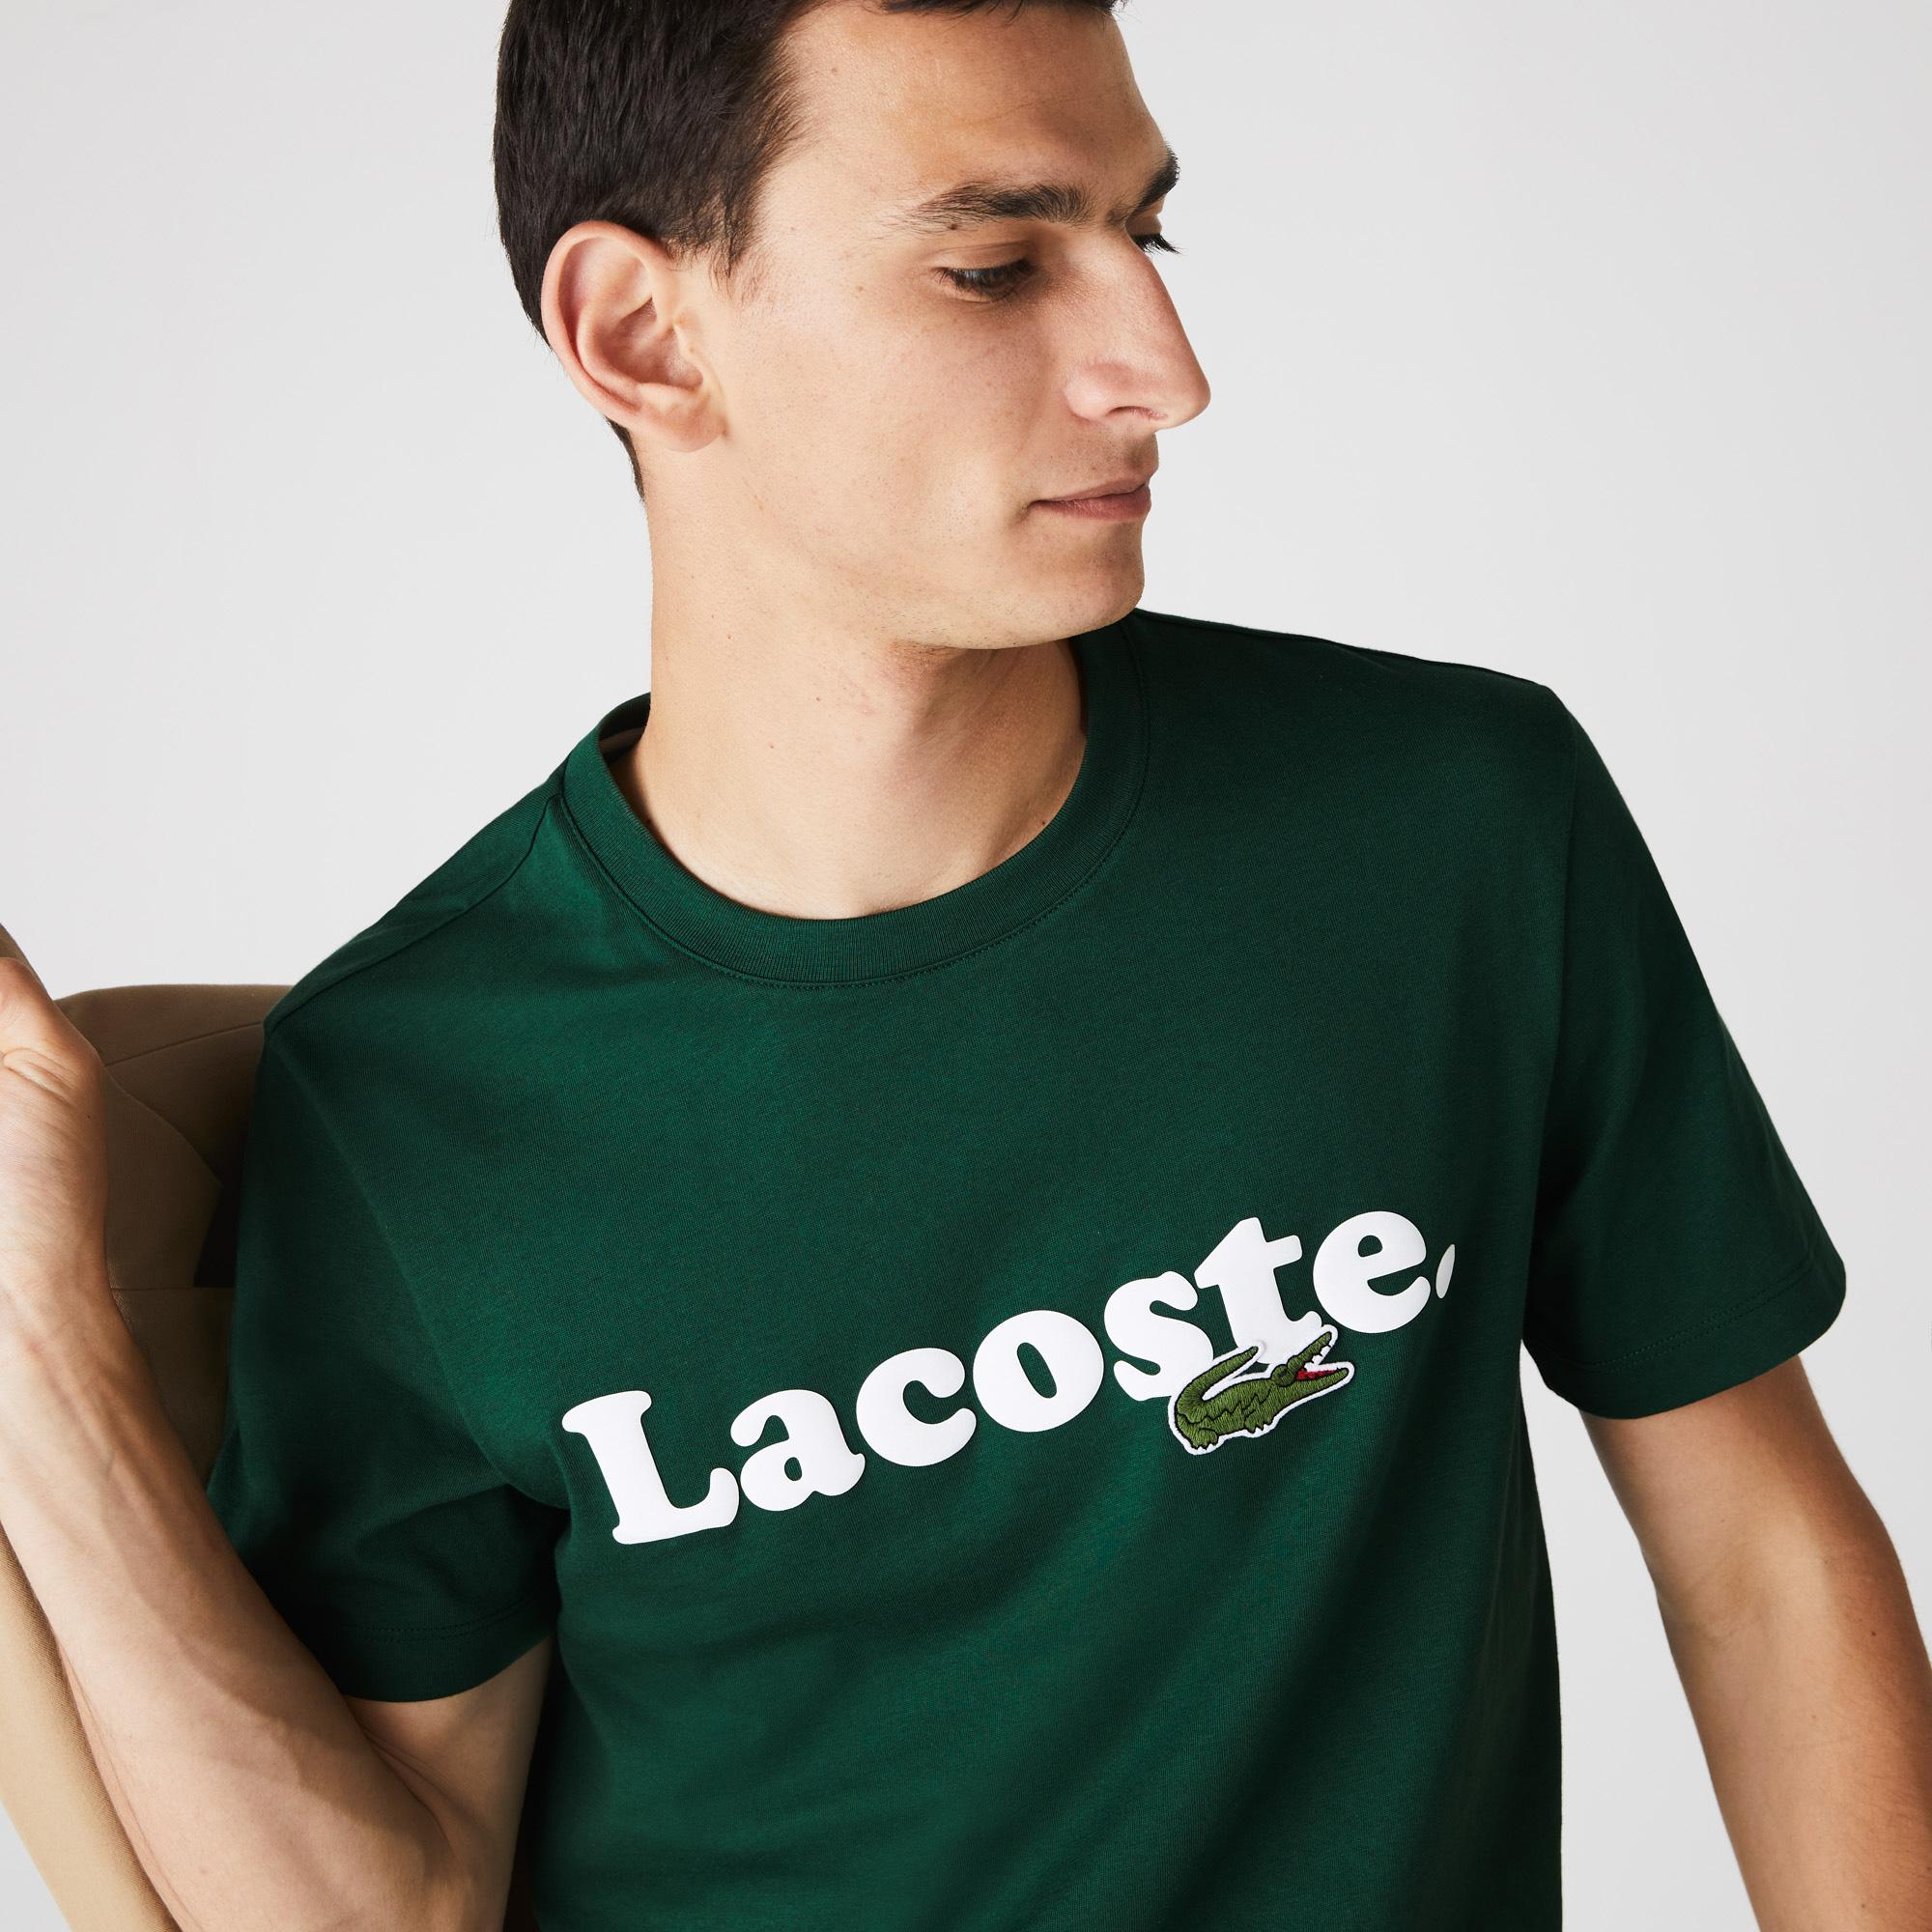 Lacoste Men's And Crocodile Branded Cotton T-shirt